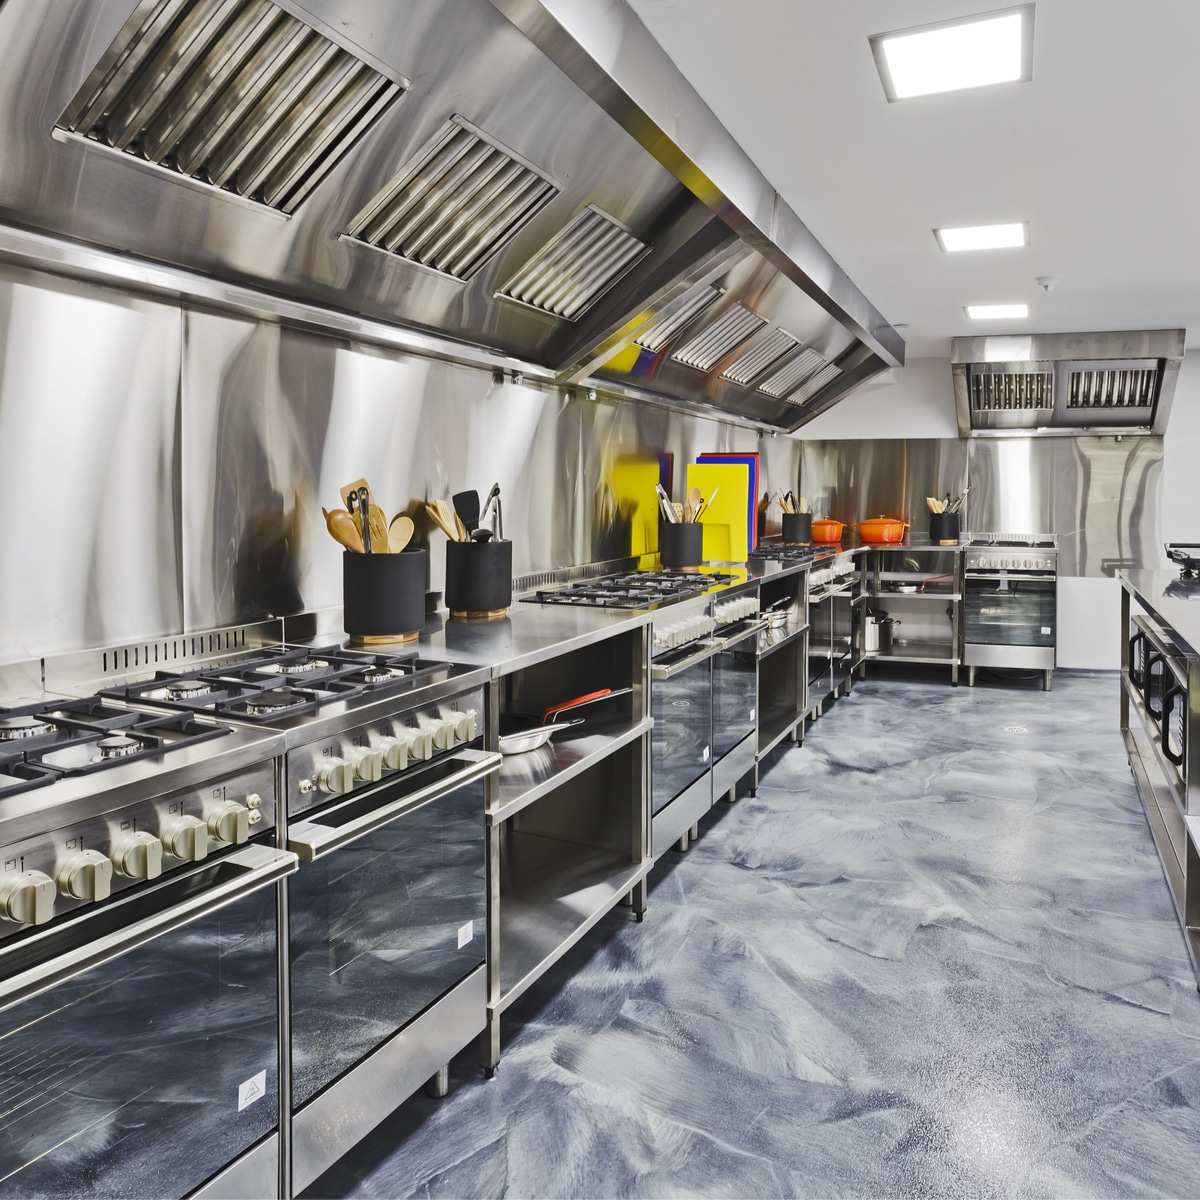 Very clean steel commercial kitchen